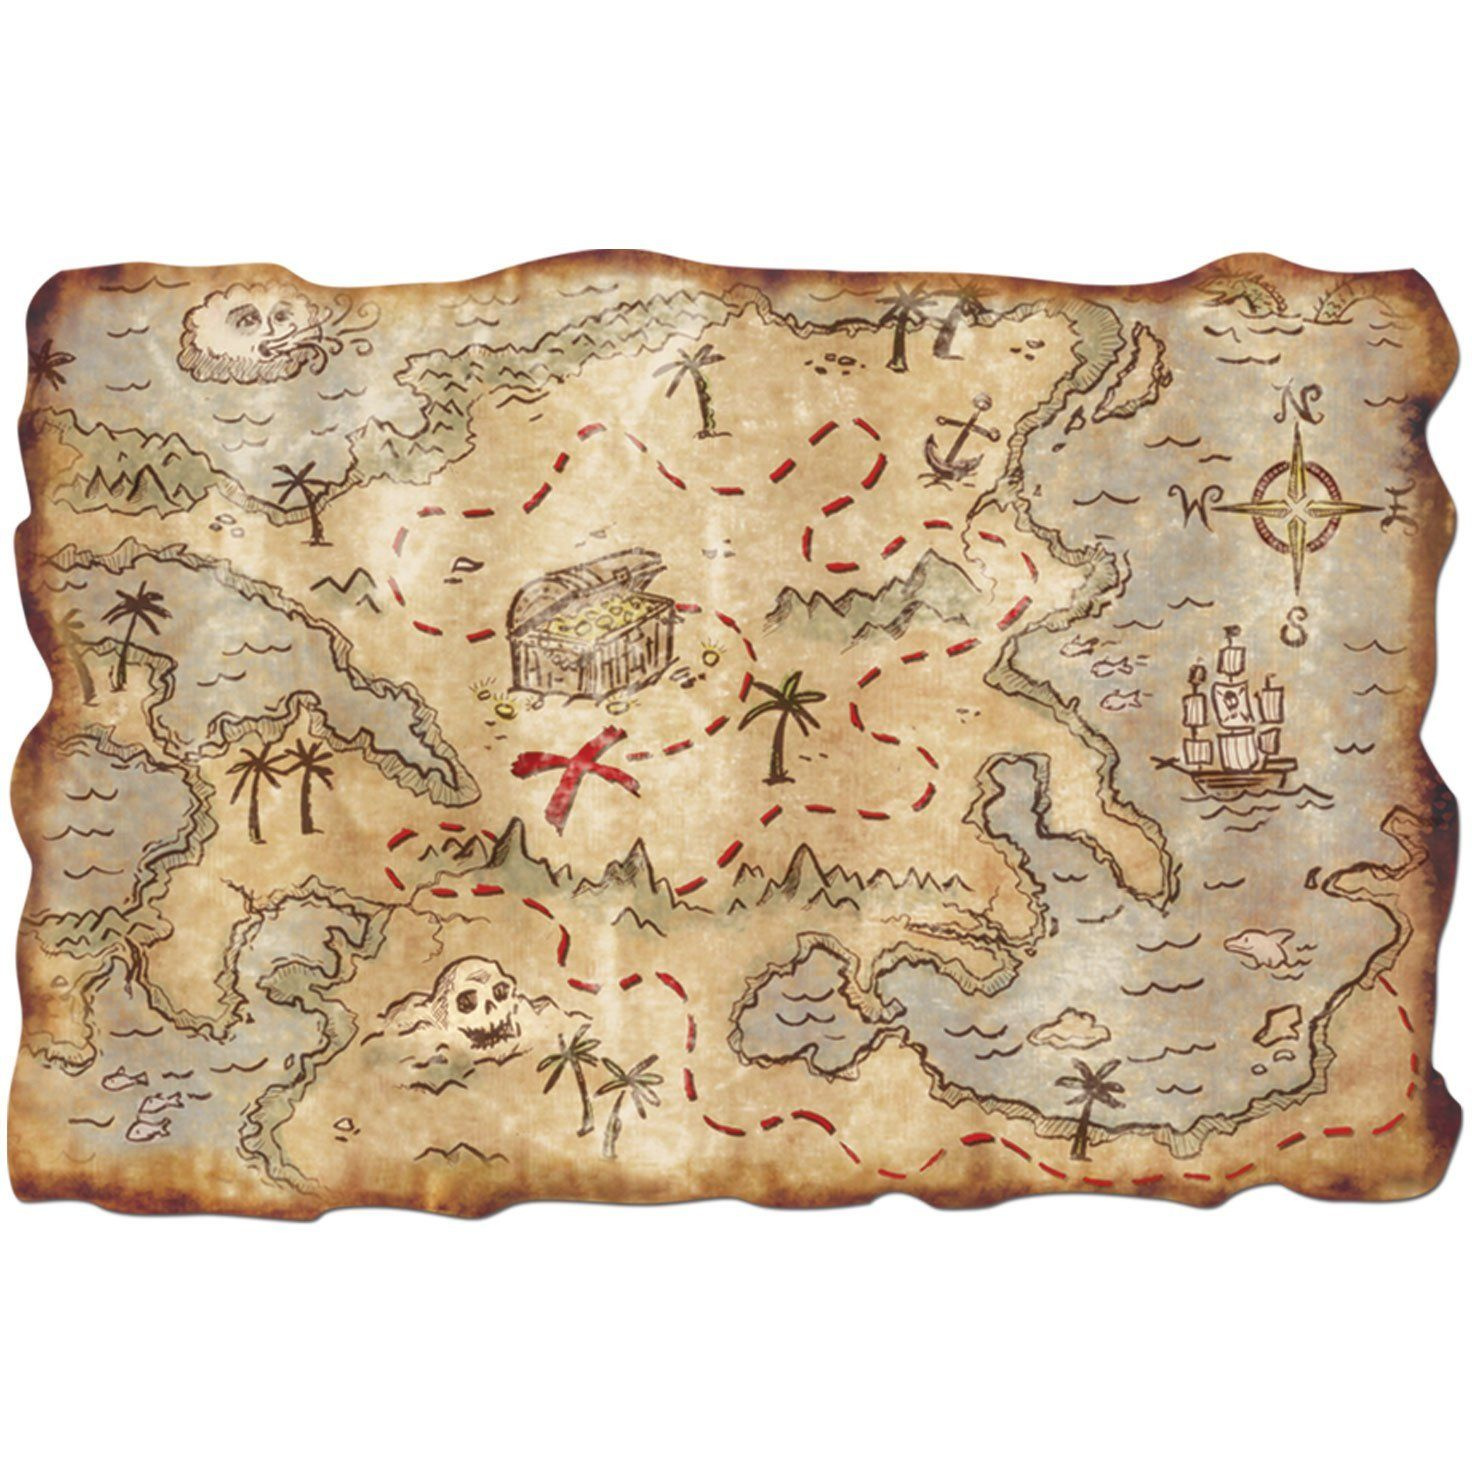 simple treasure maps vintage - photo #20